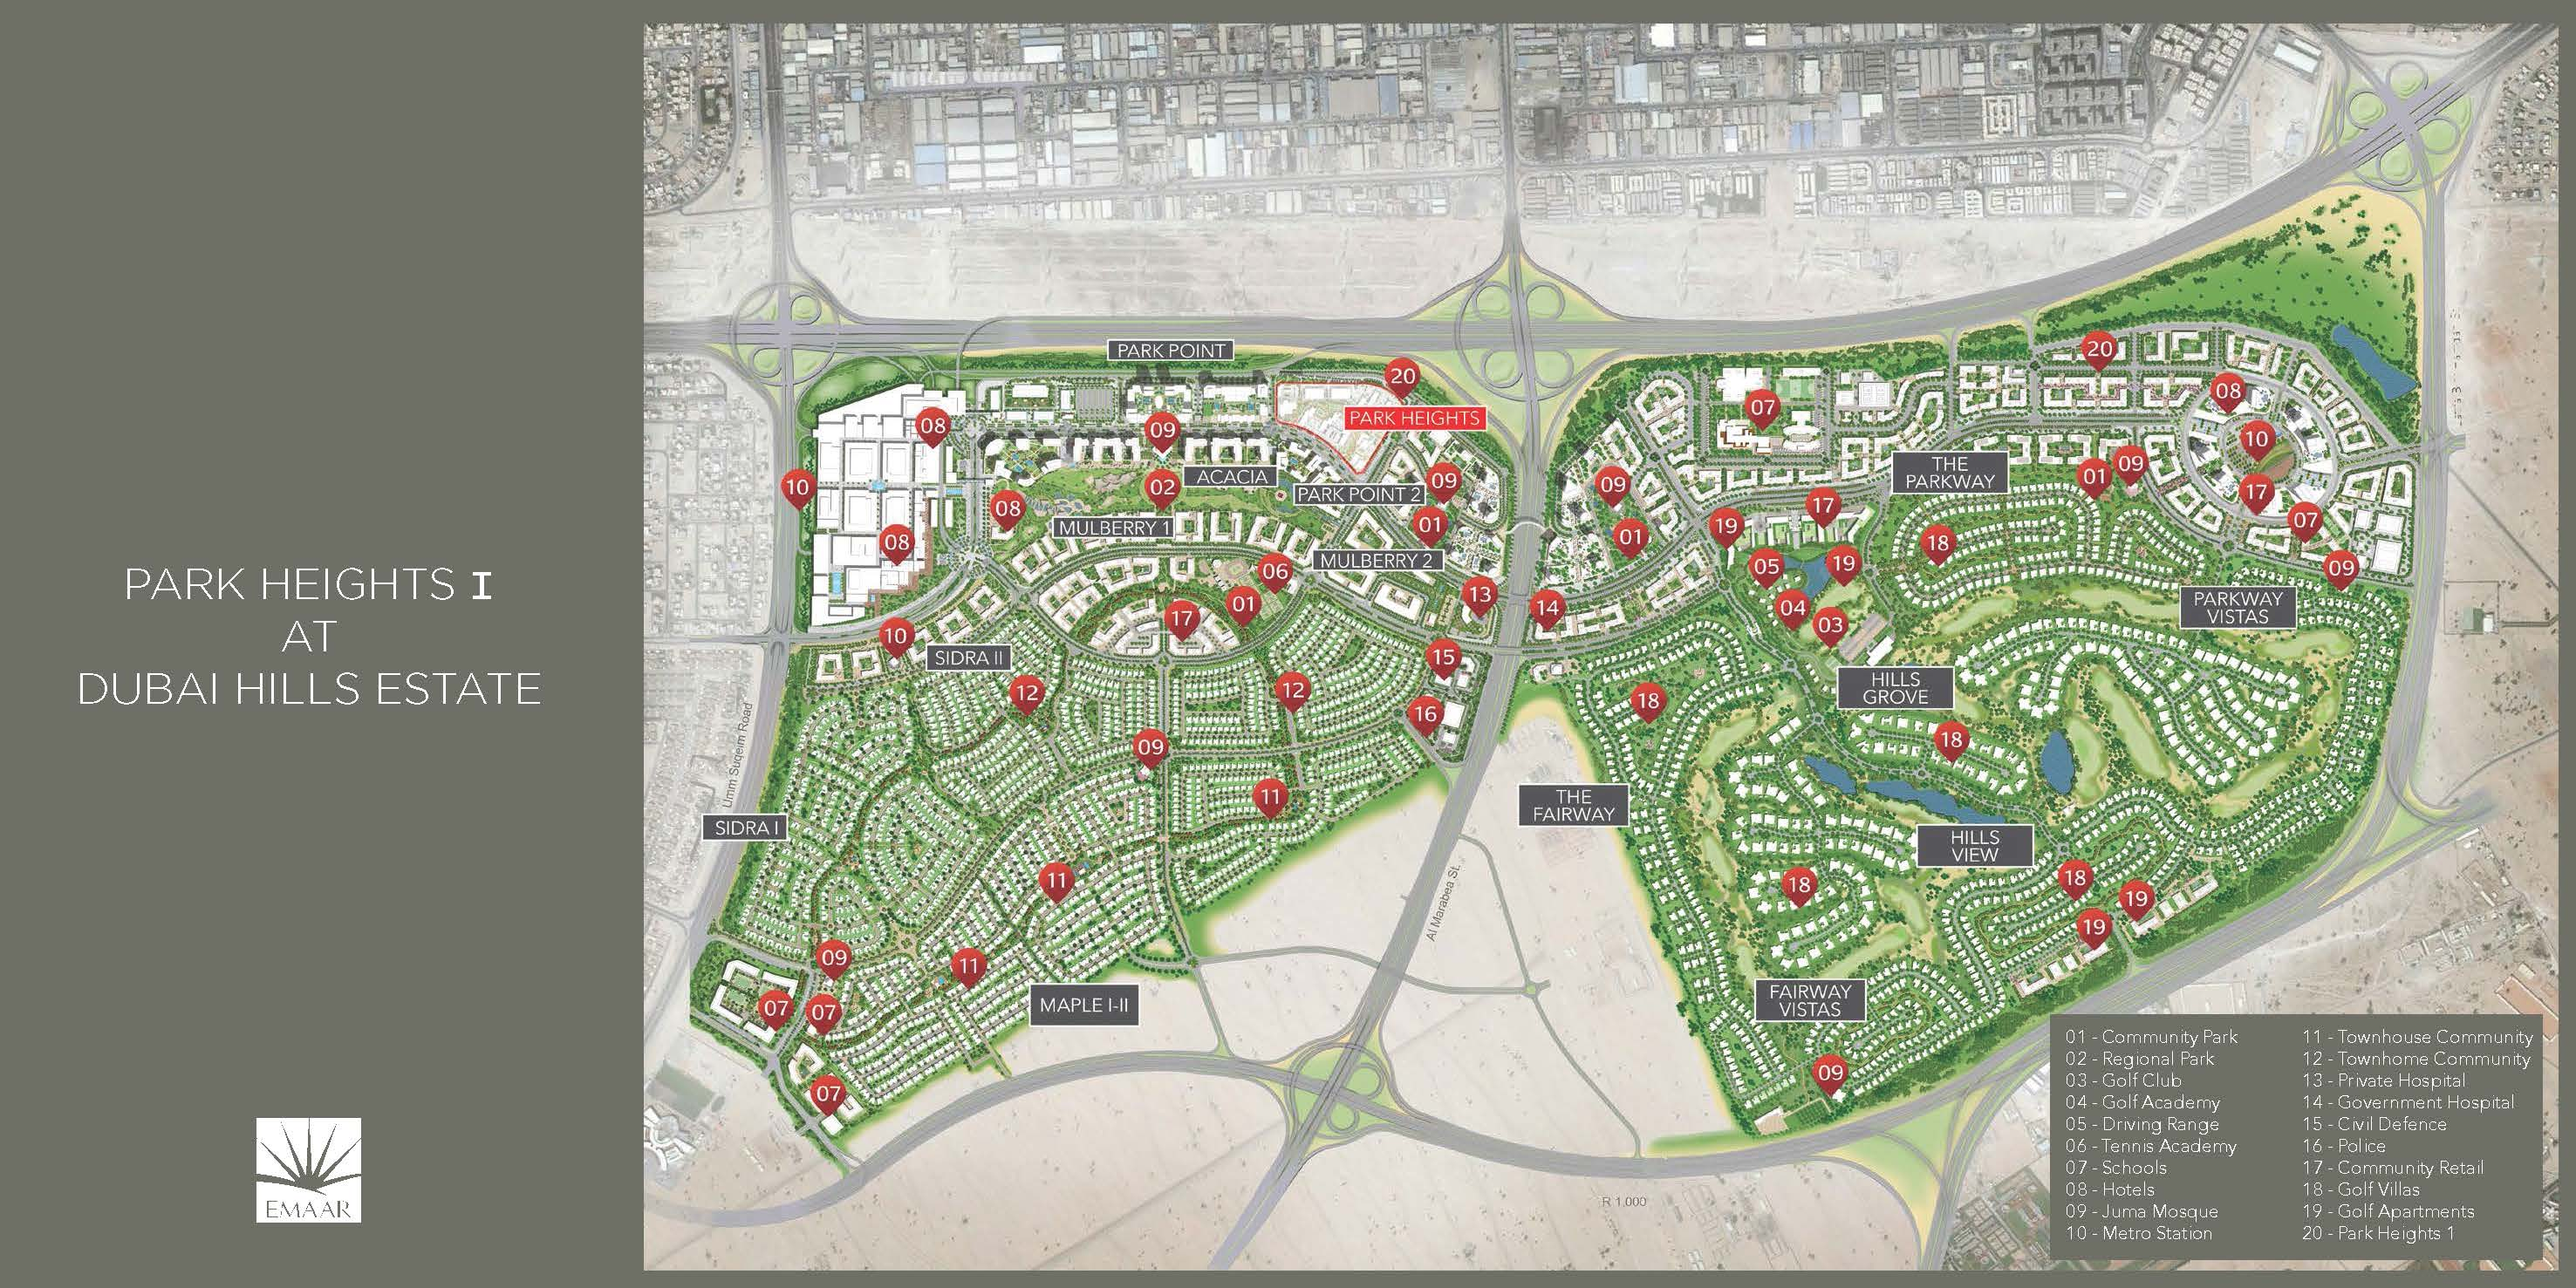 Dubai Hills Estate Master Plan